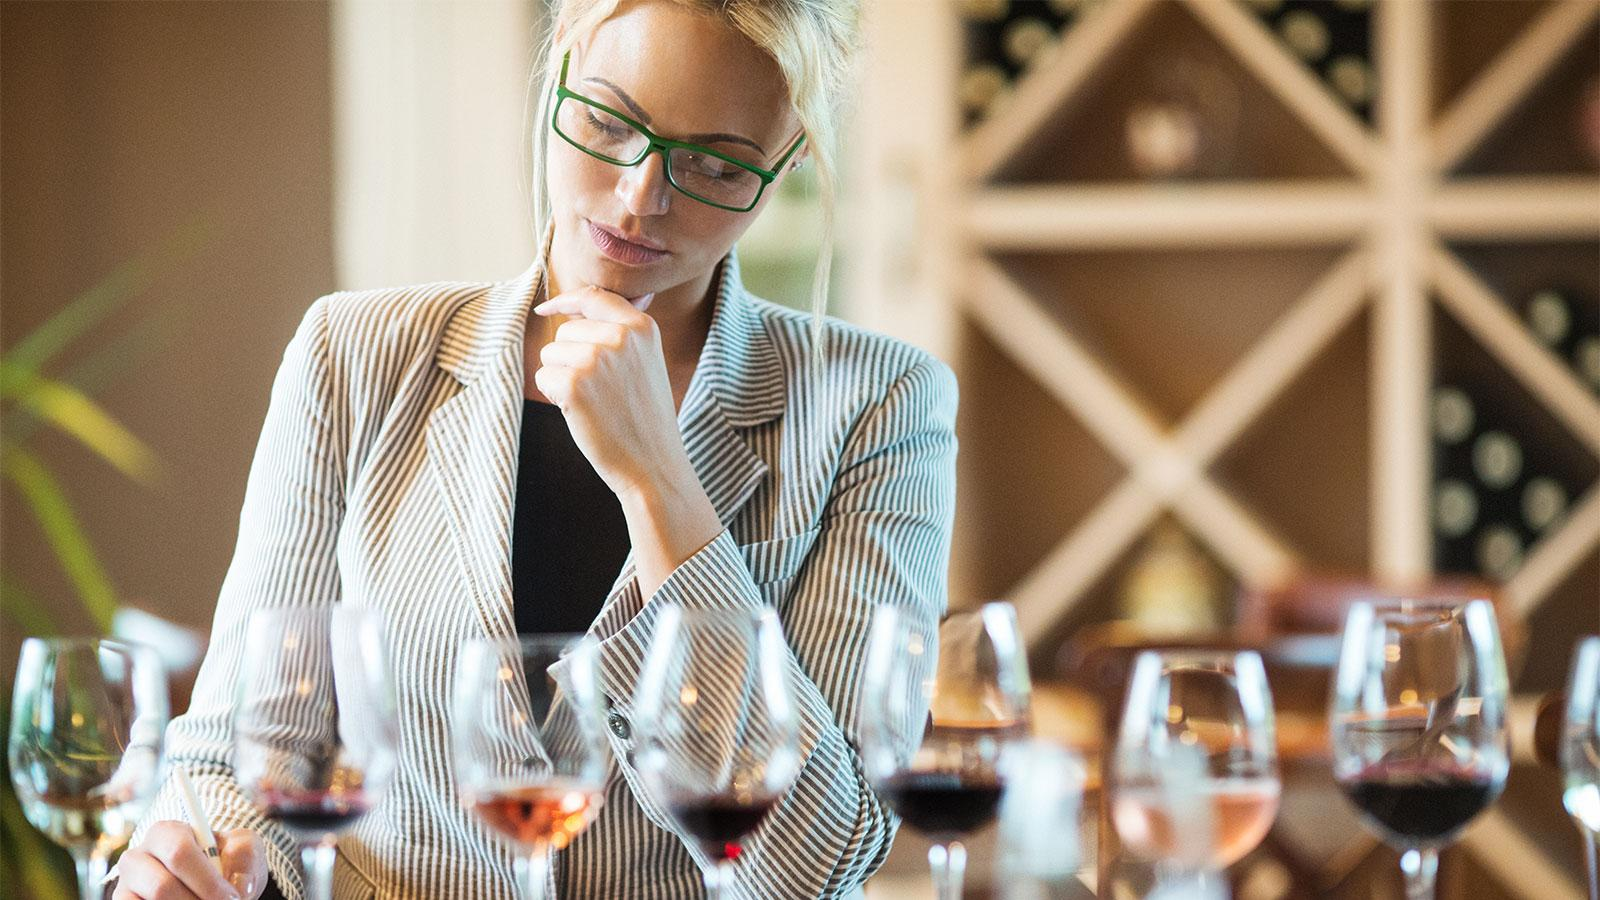 Somm Roundtable: Your Wine Predictions for 2019